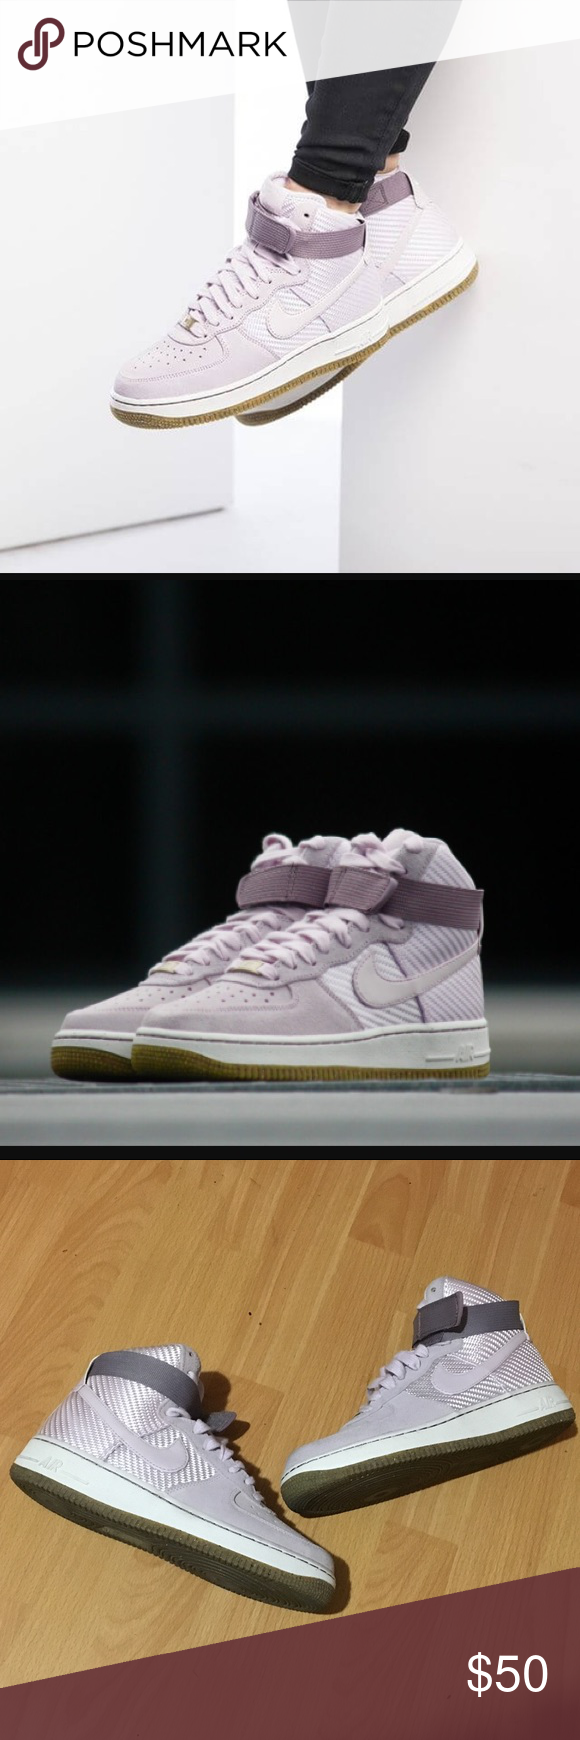 99e59c04a608 Nike Air Force 1 High Bleach Lilac sz 8 Women s Nike Shoes Sneakers